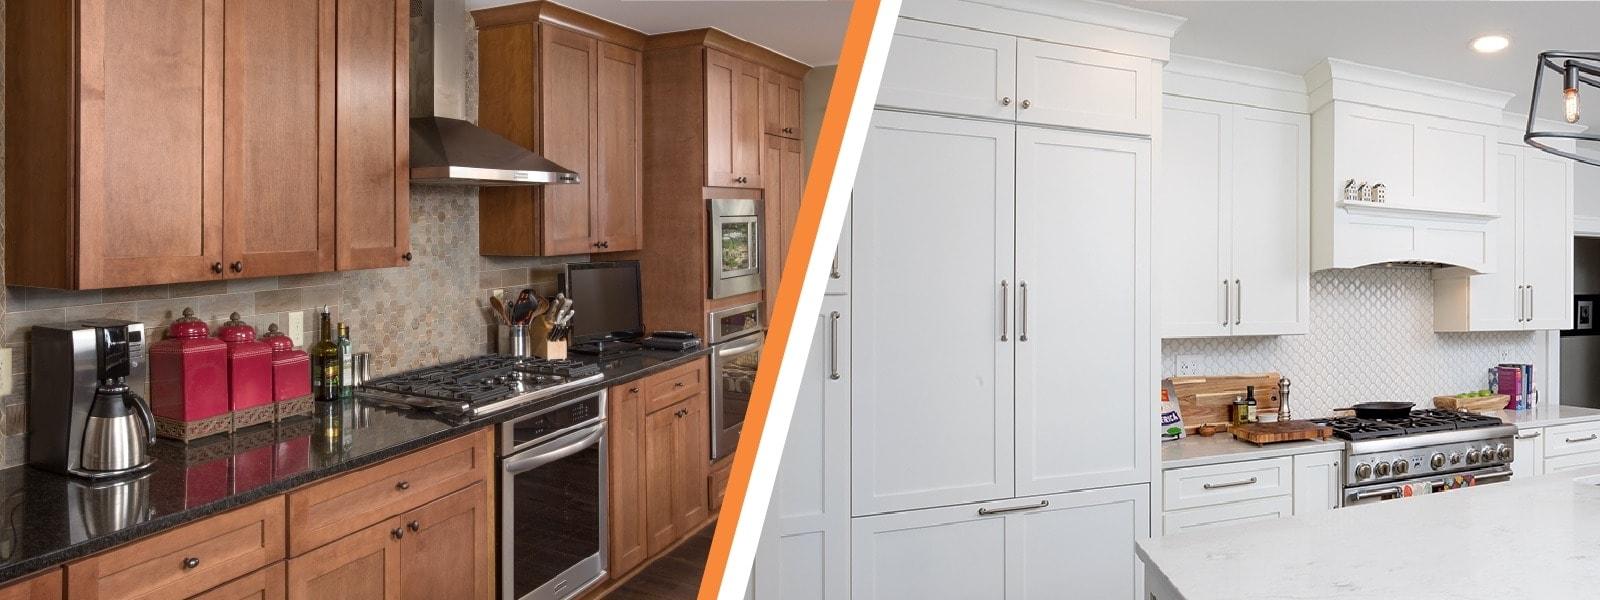 An example of painted vs. stained cabinetry.